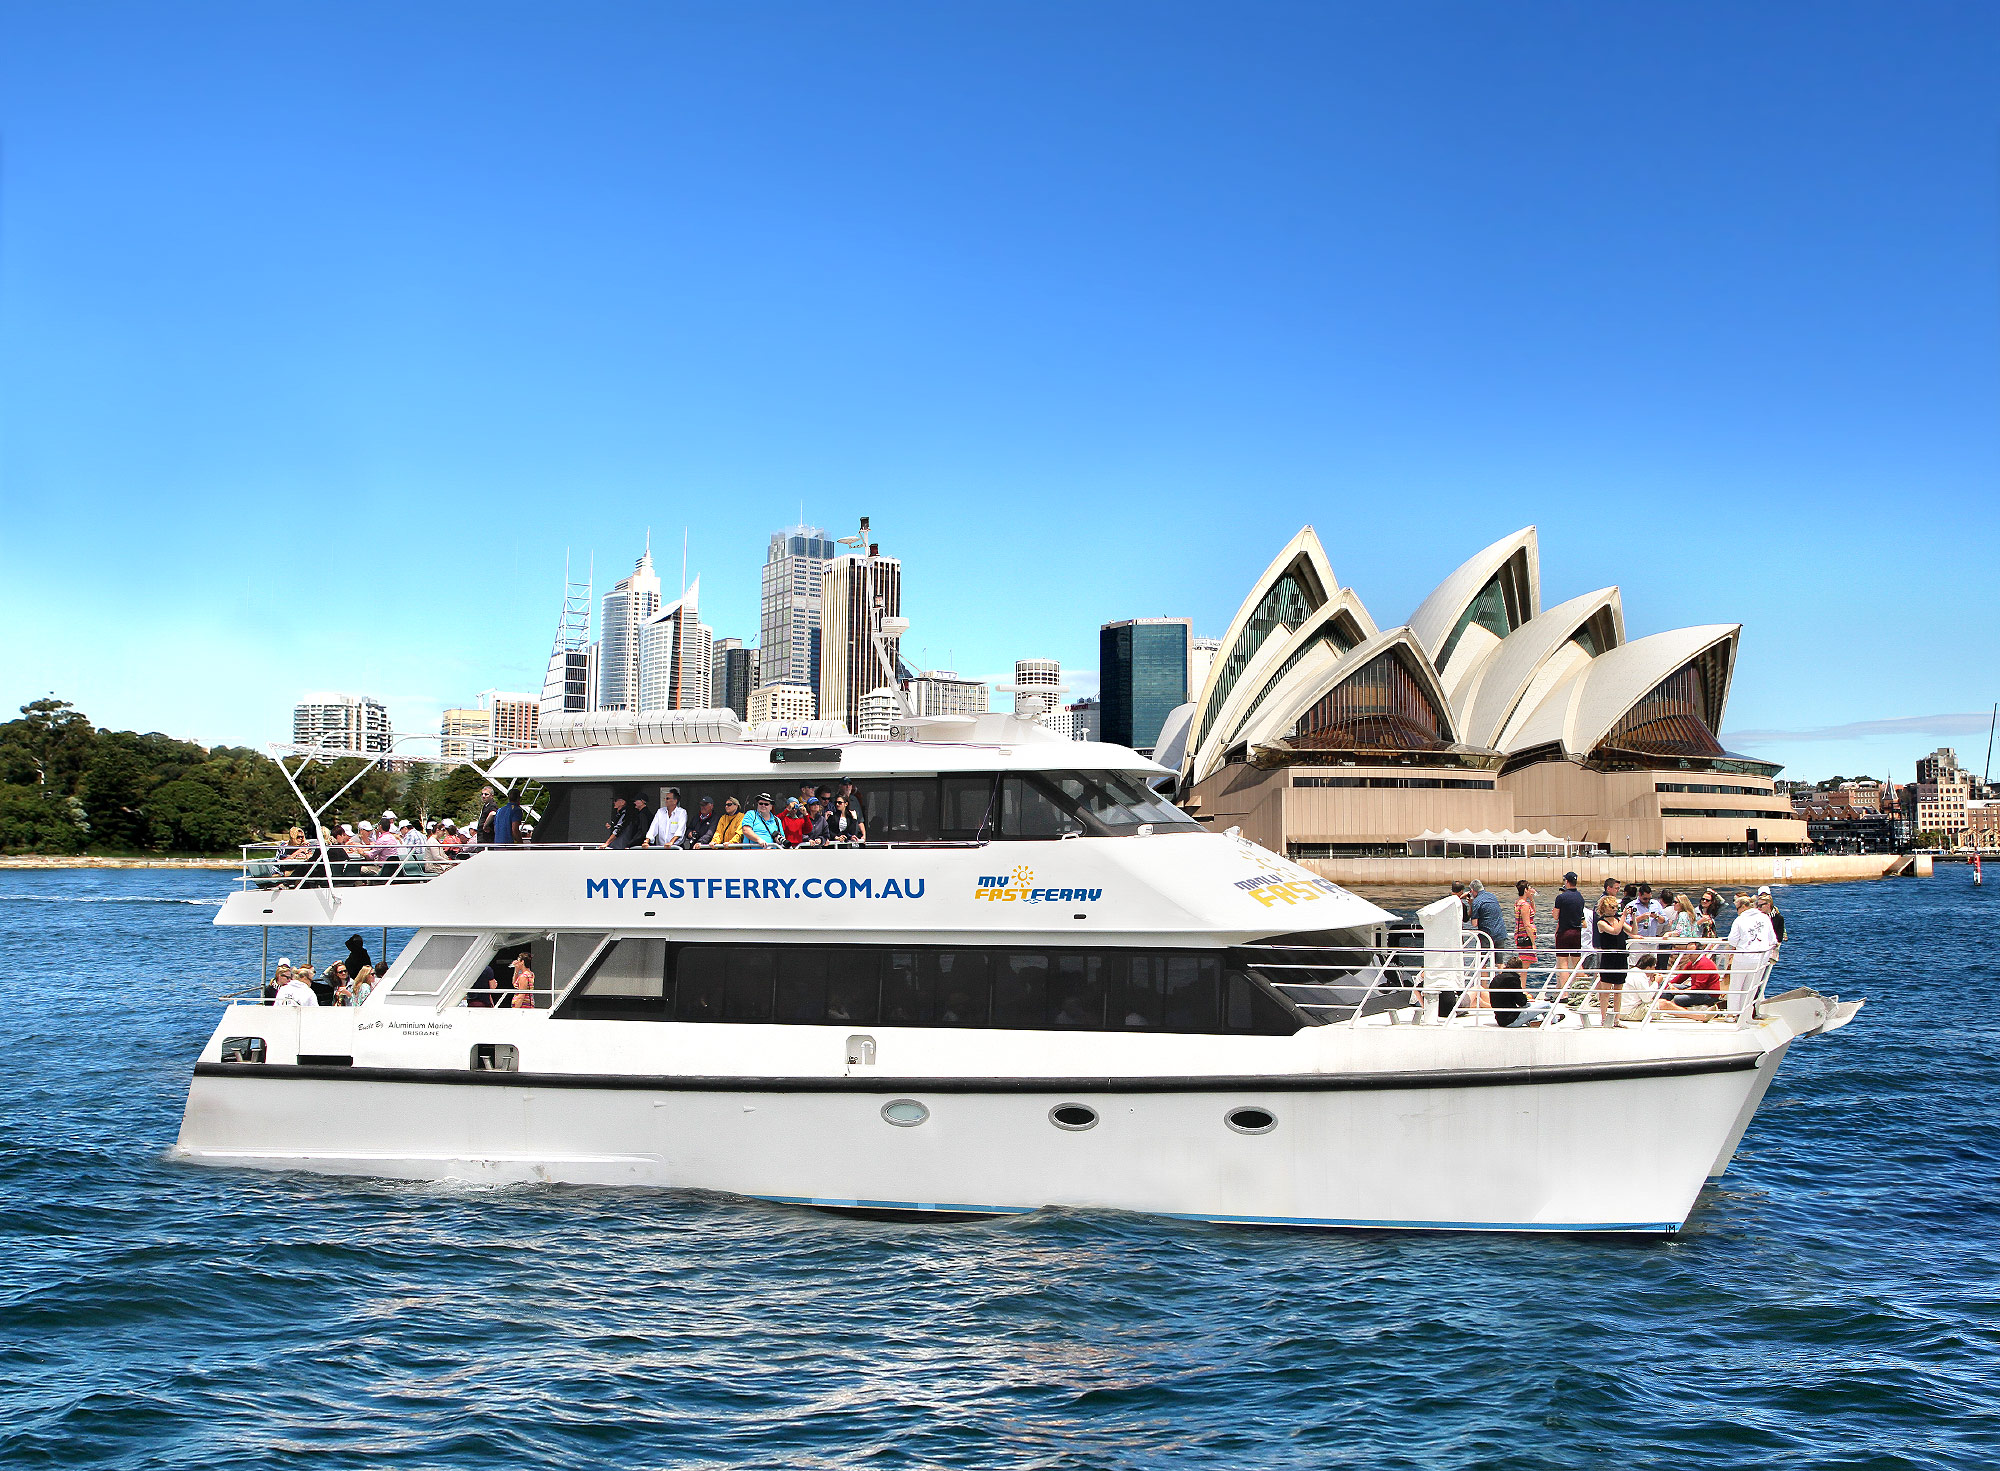 Arafura Pearl, New Years Eve, Sydney Harbour Cruise